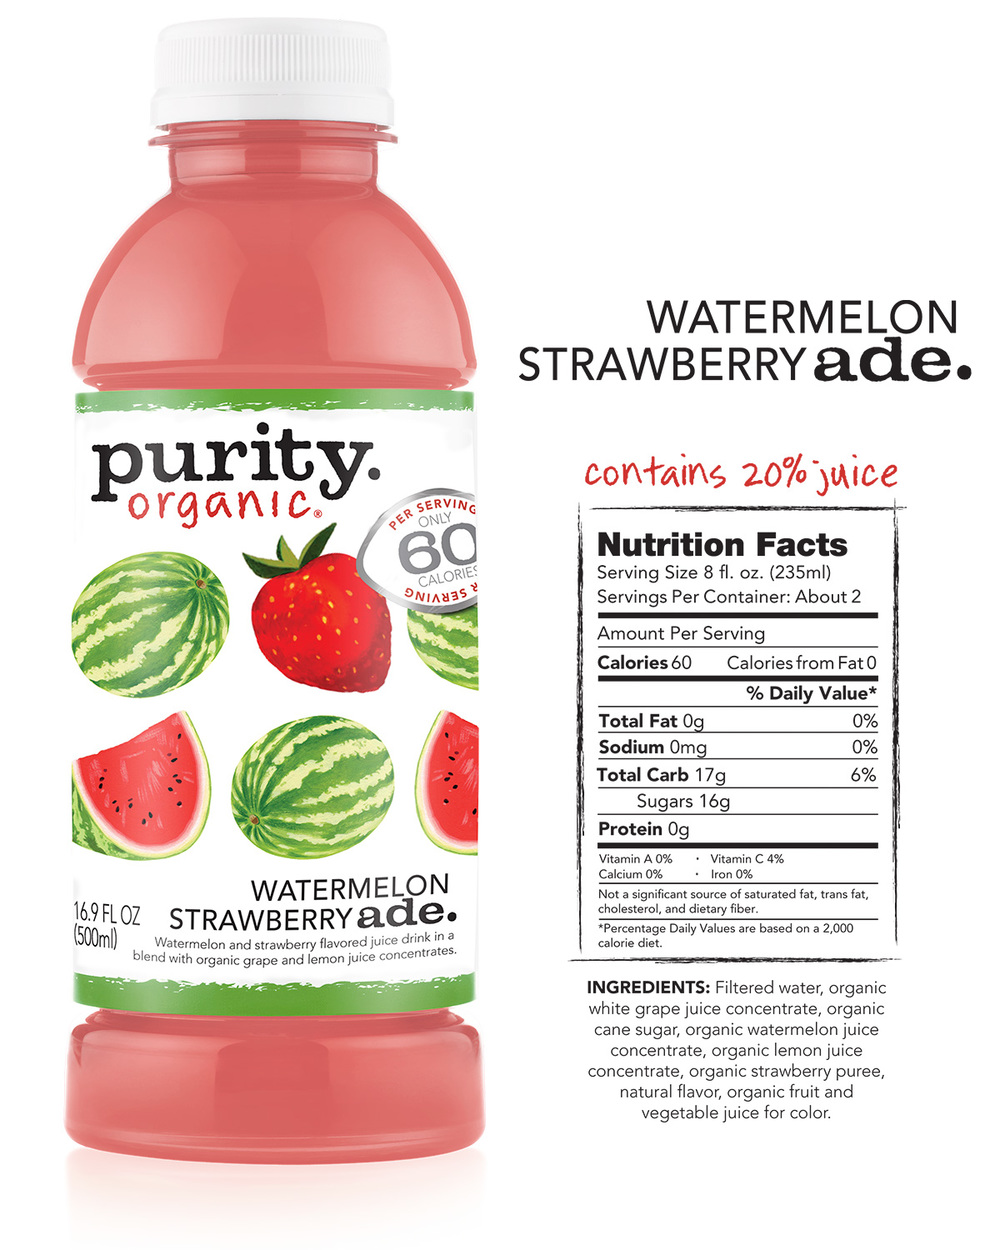 How many calories are in the watermelon